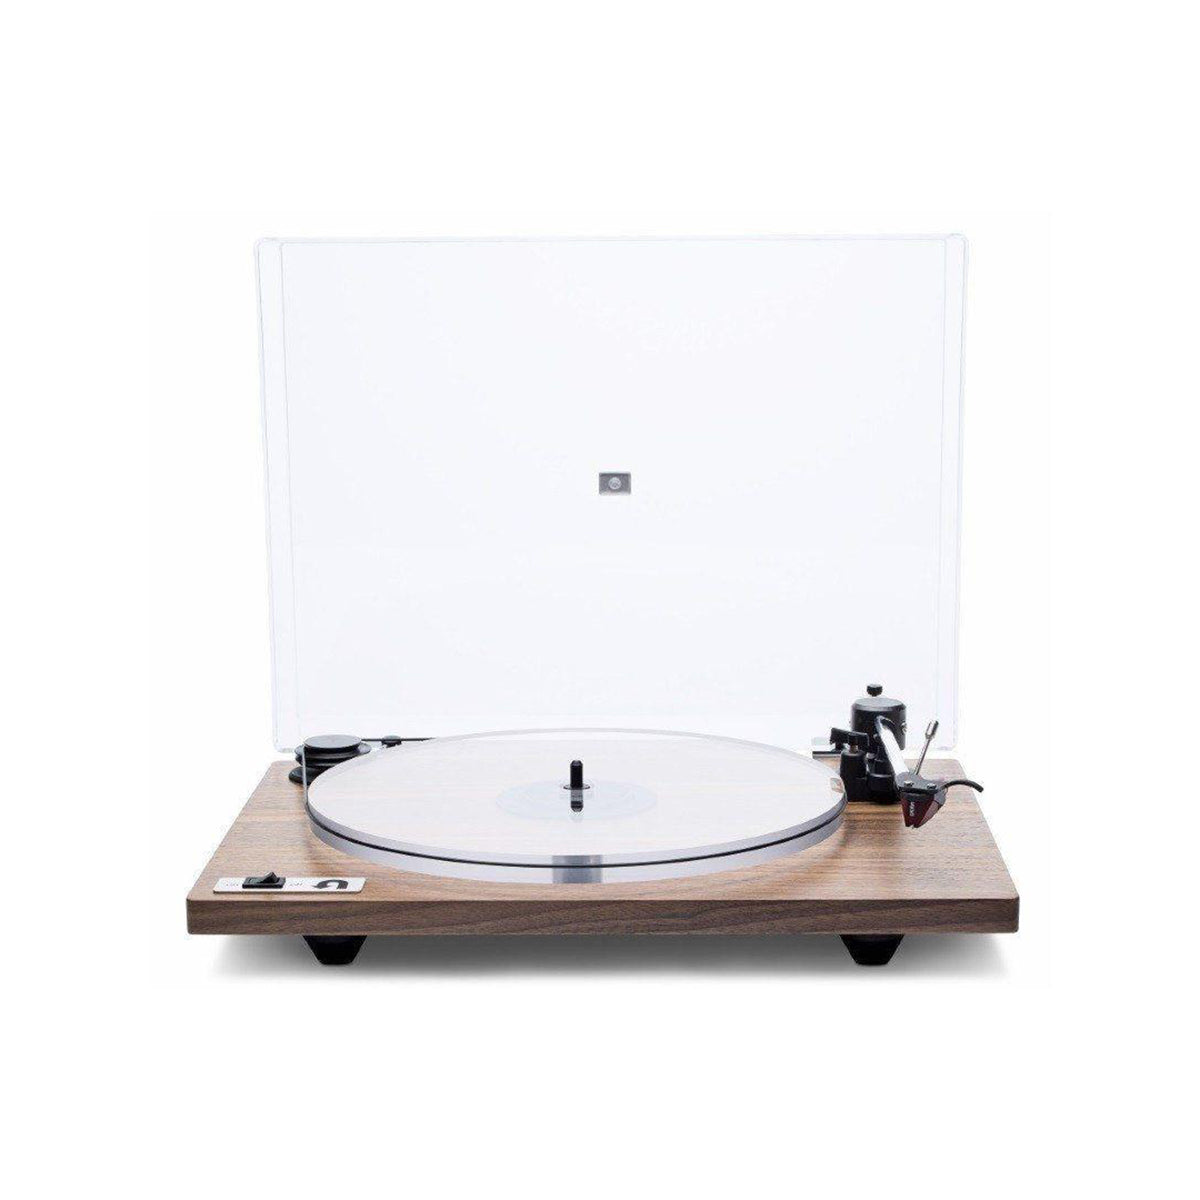 U-Turn Audio: Orbit Special Turntable w/ Built In Preamp (2M Red) - Walnut